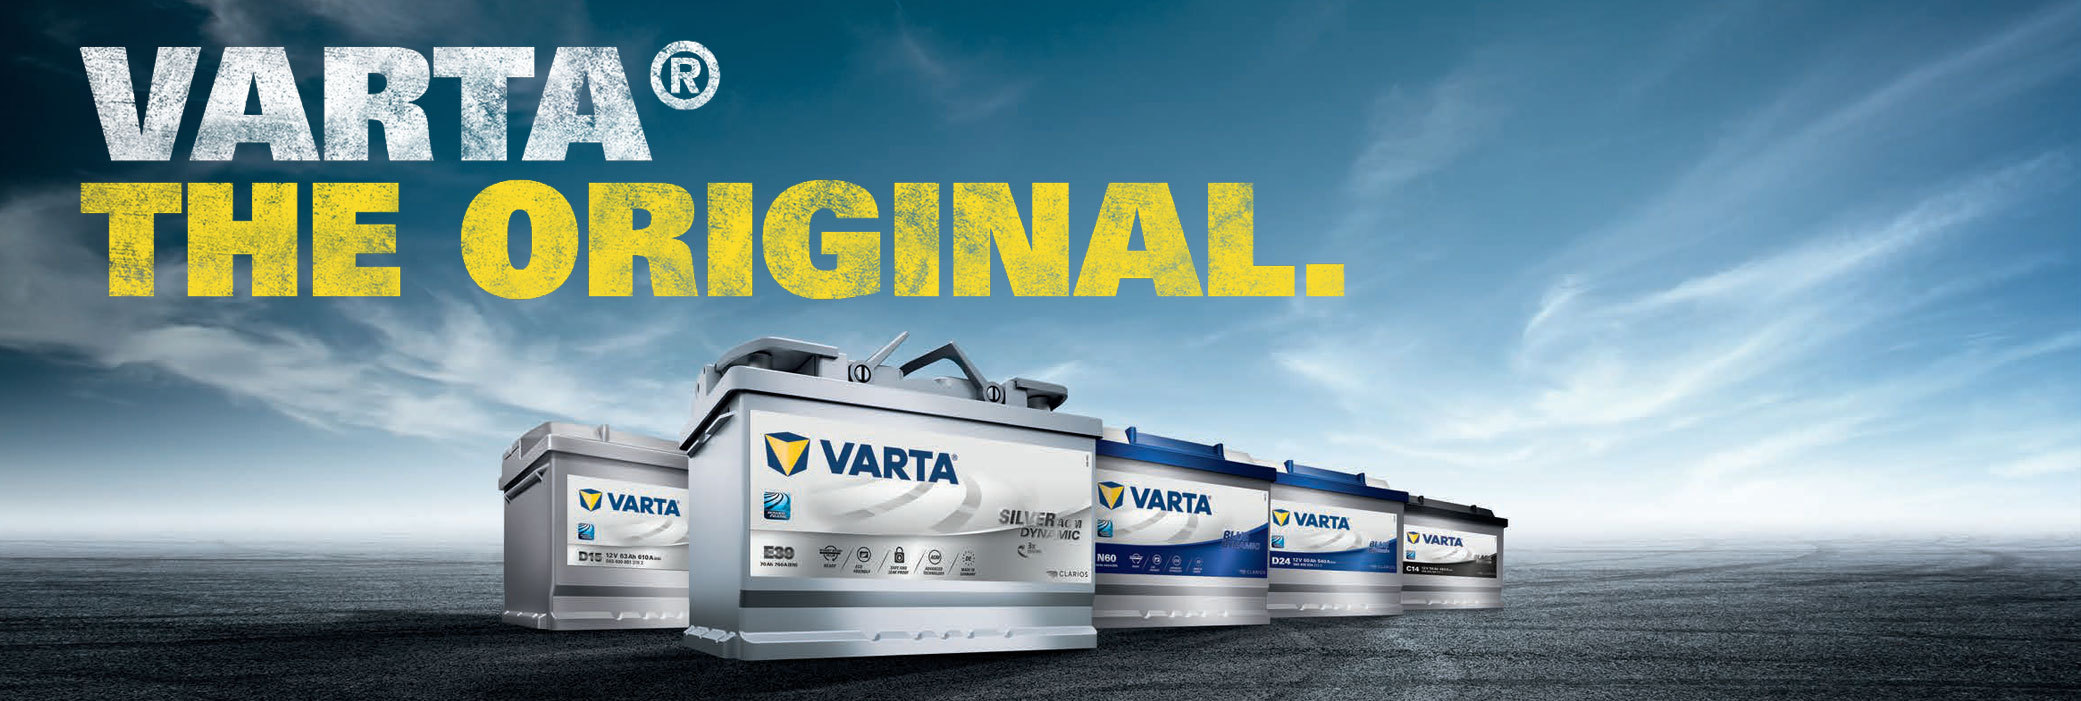 VARTA the Original